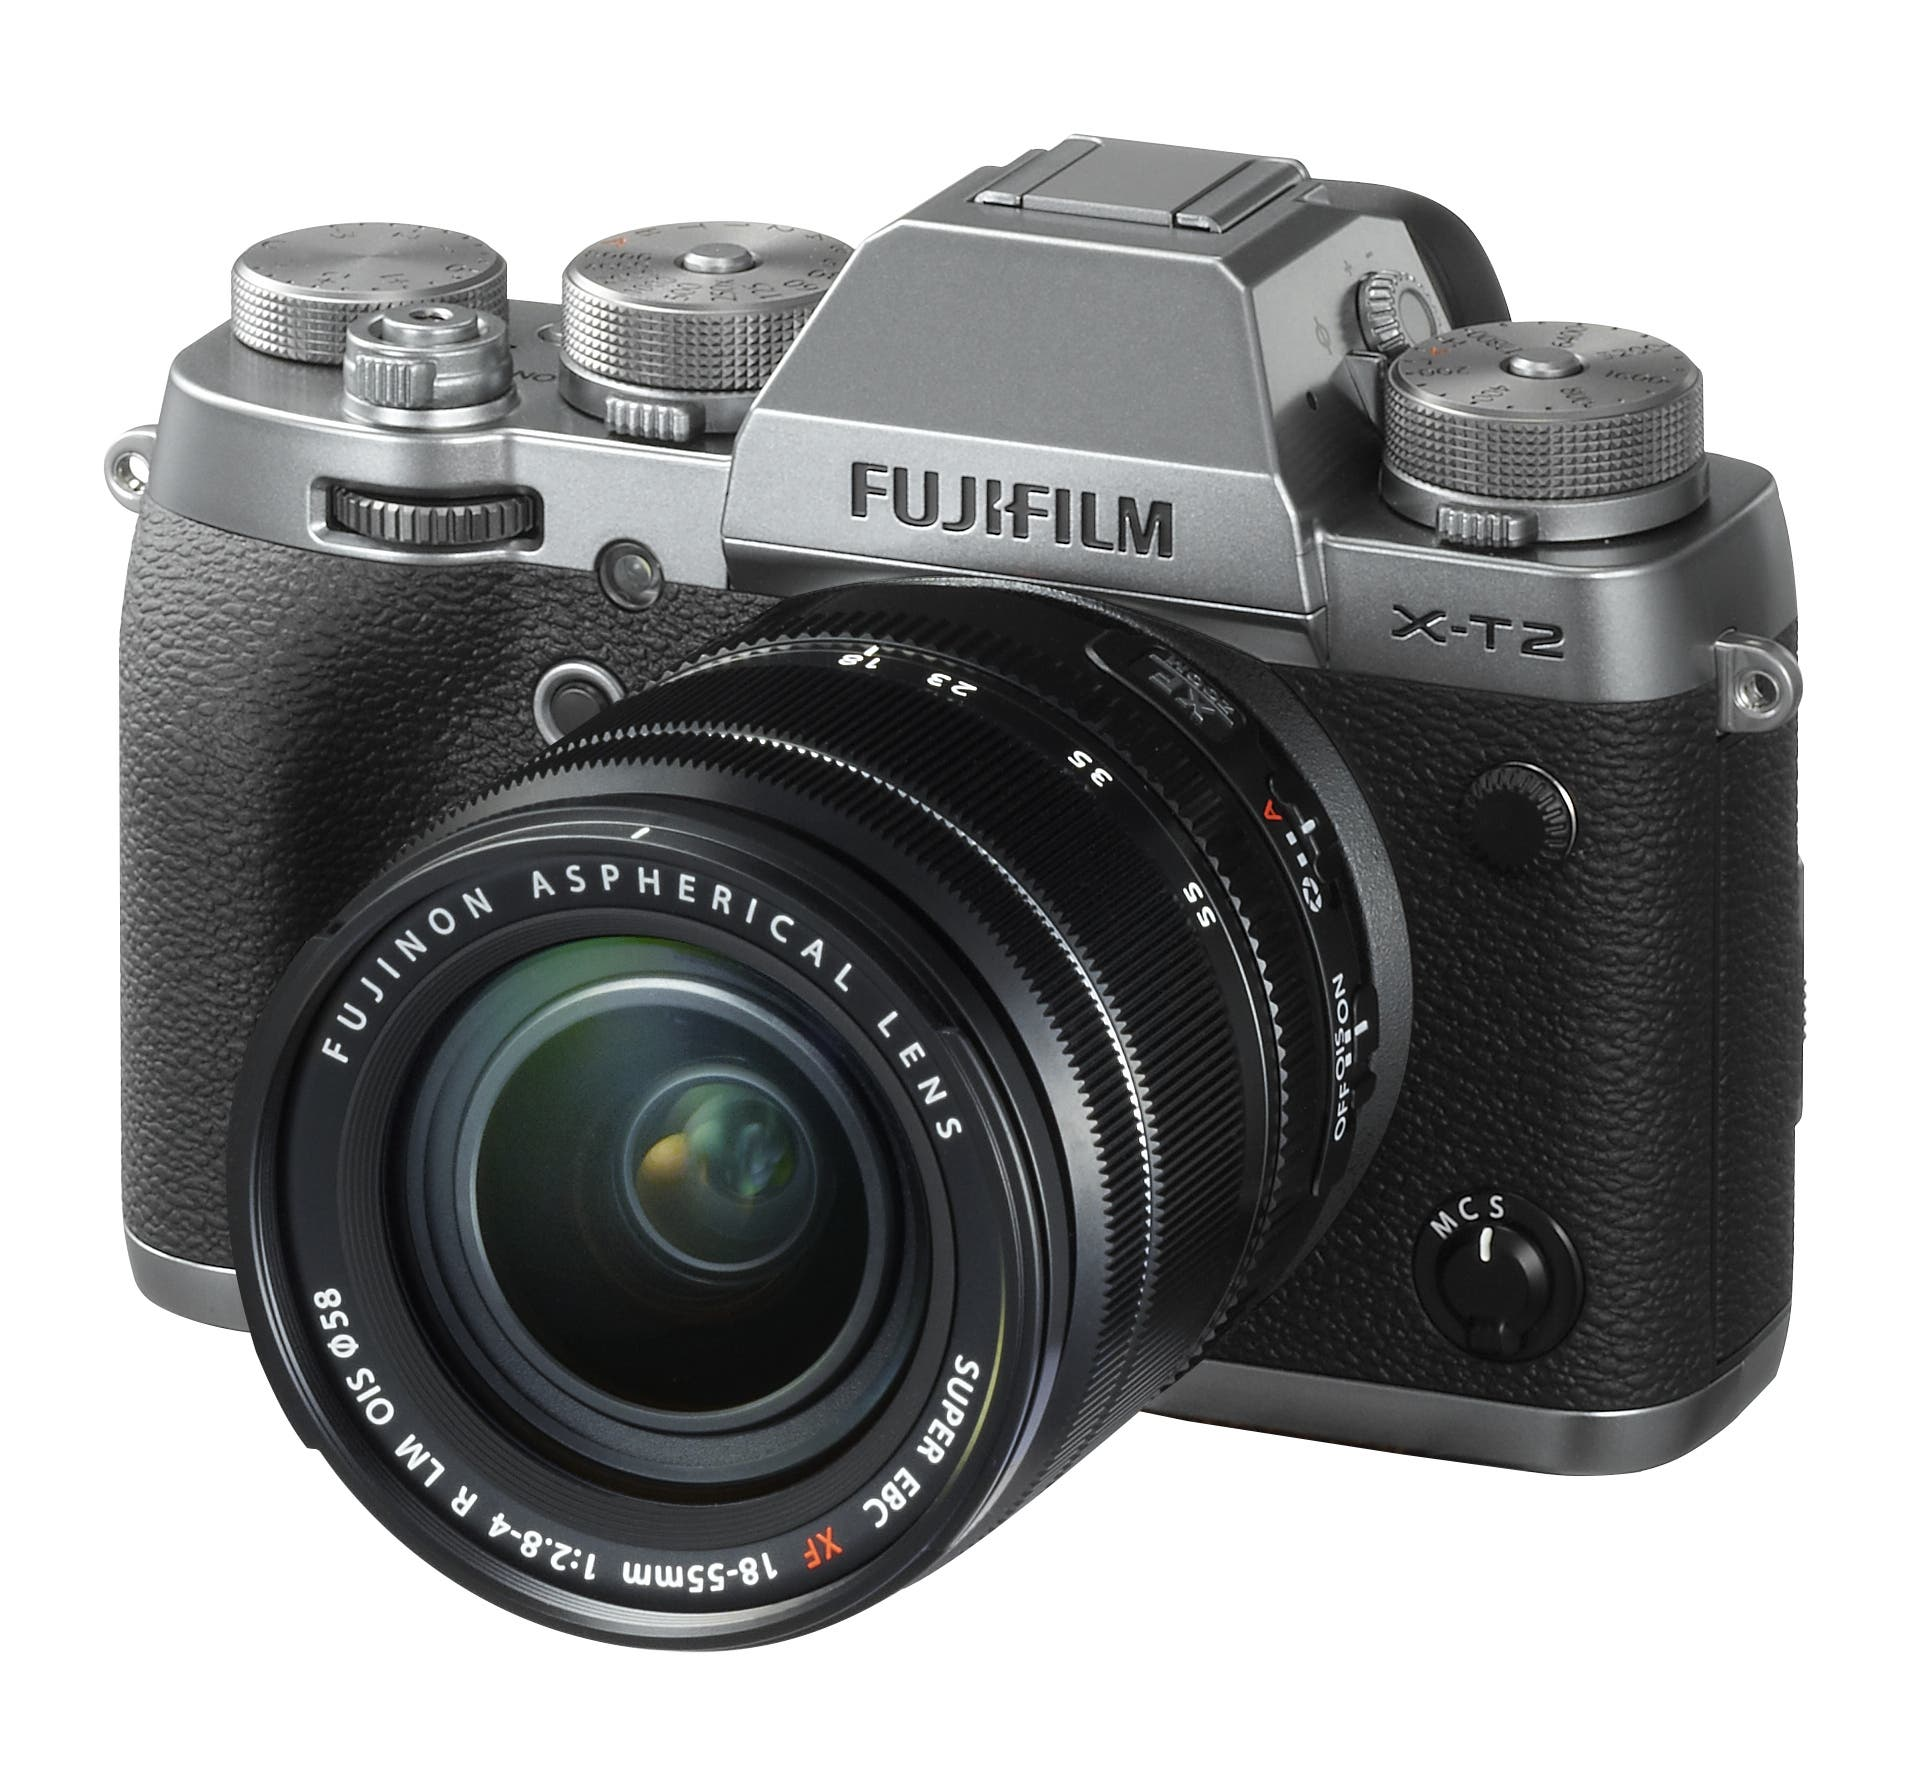 Fujifilm Launches New Graphite Edition X-Pro2, X-T2, and XF 23mm F2